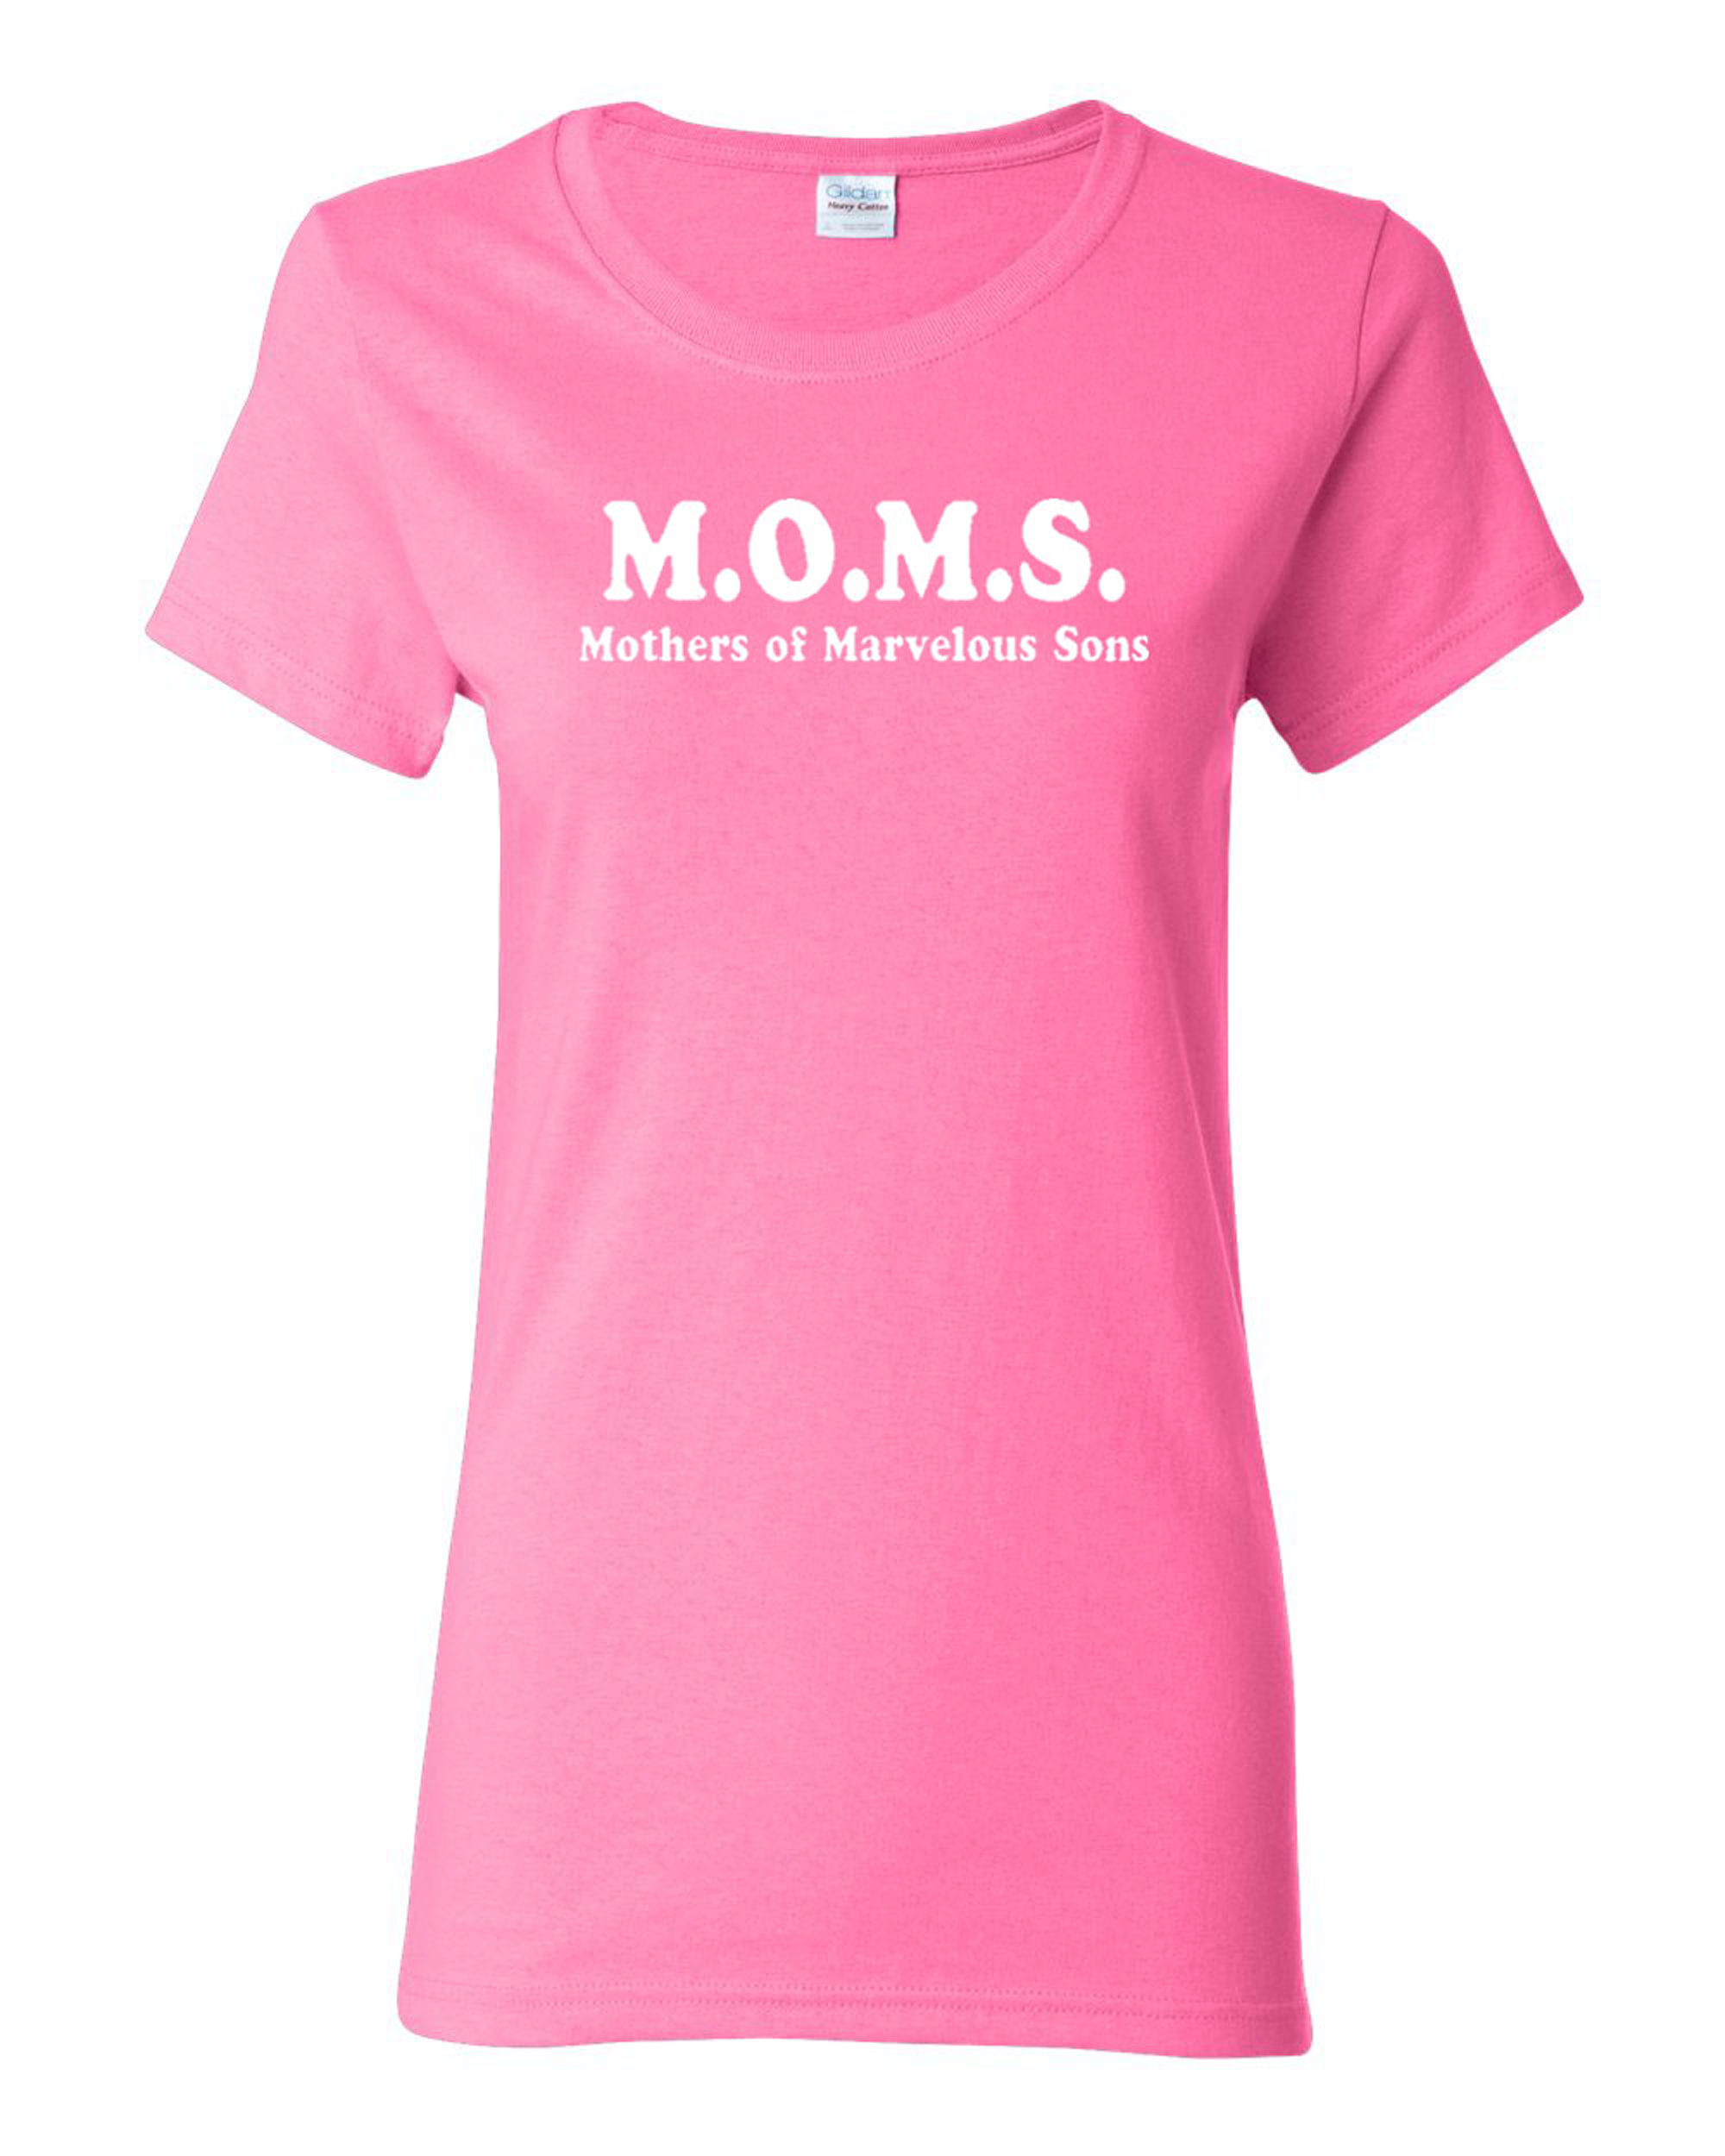 Ladies M.O.M.S Mothers Of Marvelous Sons Funny T-Shirt Tee